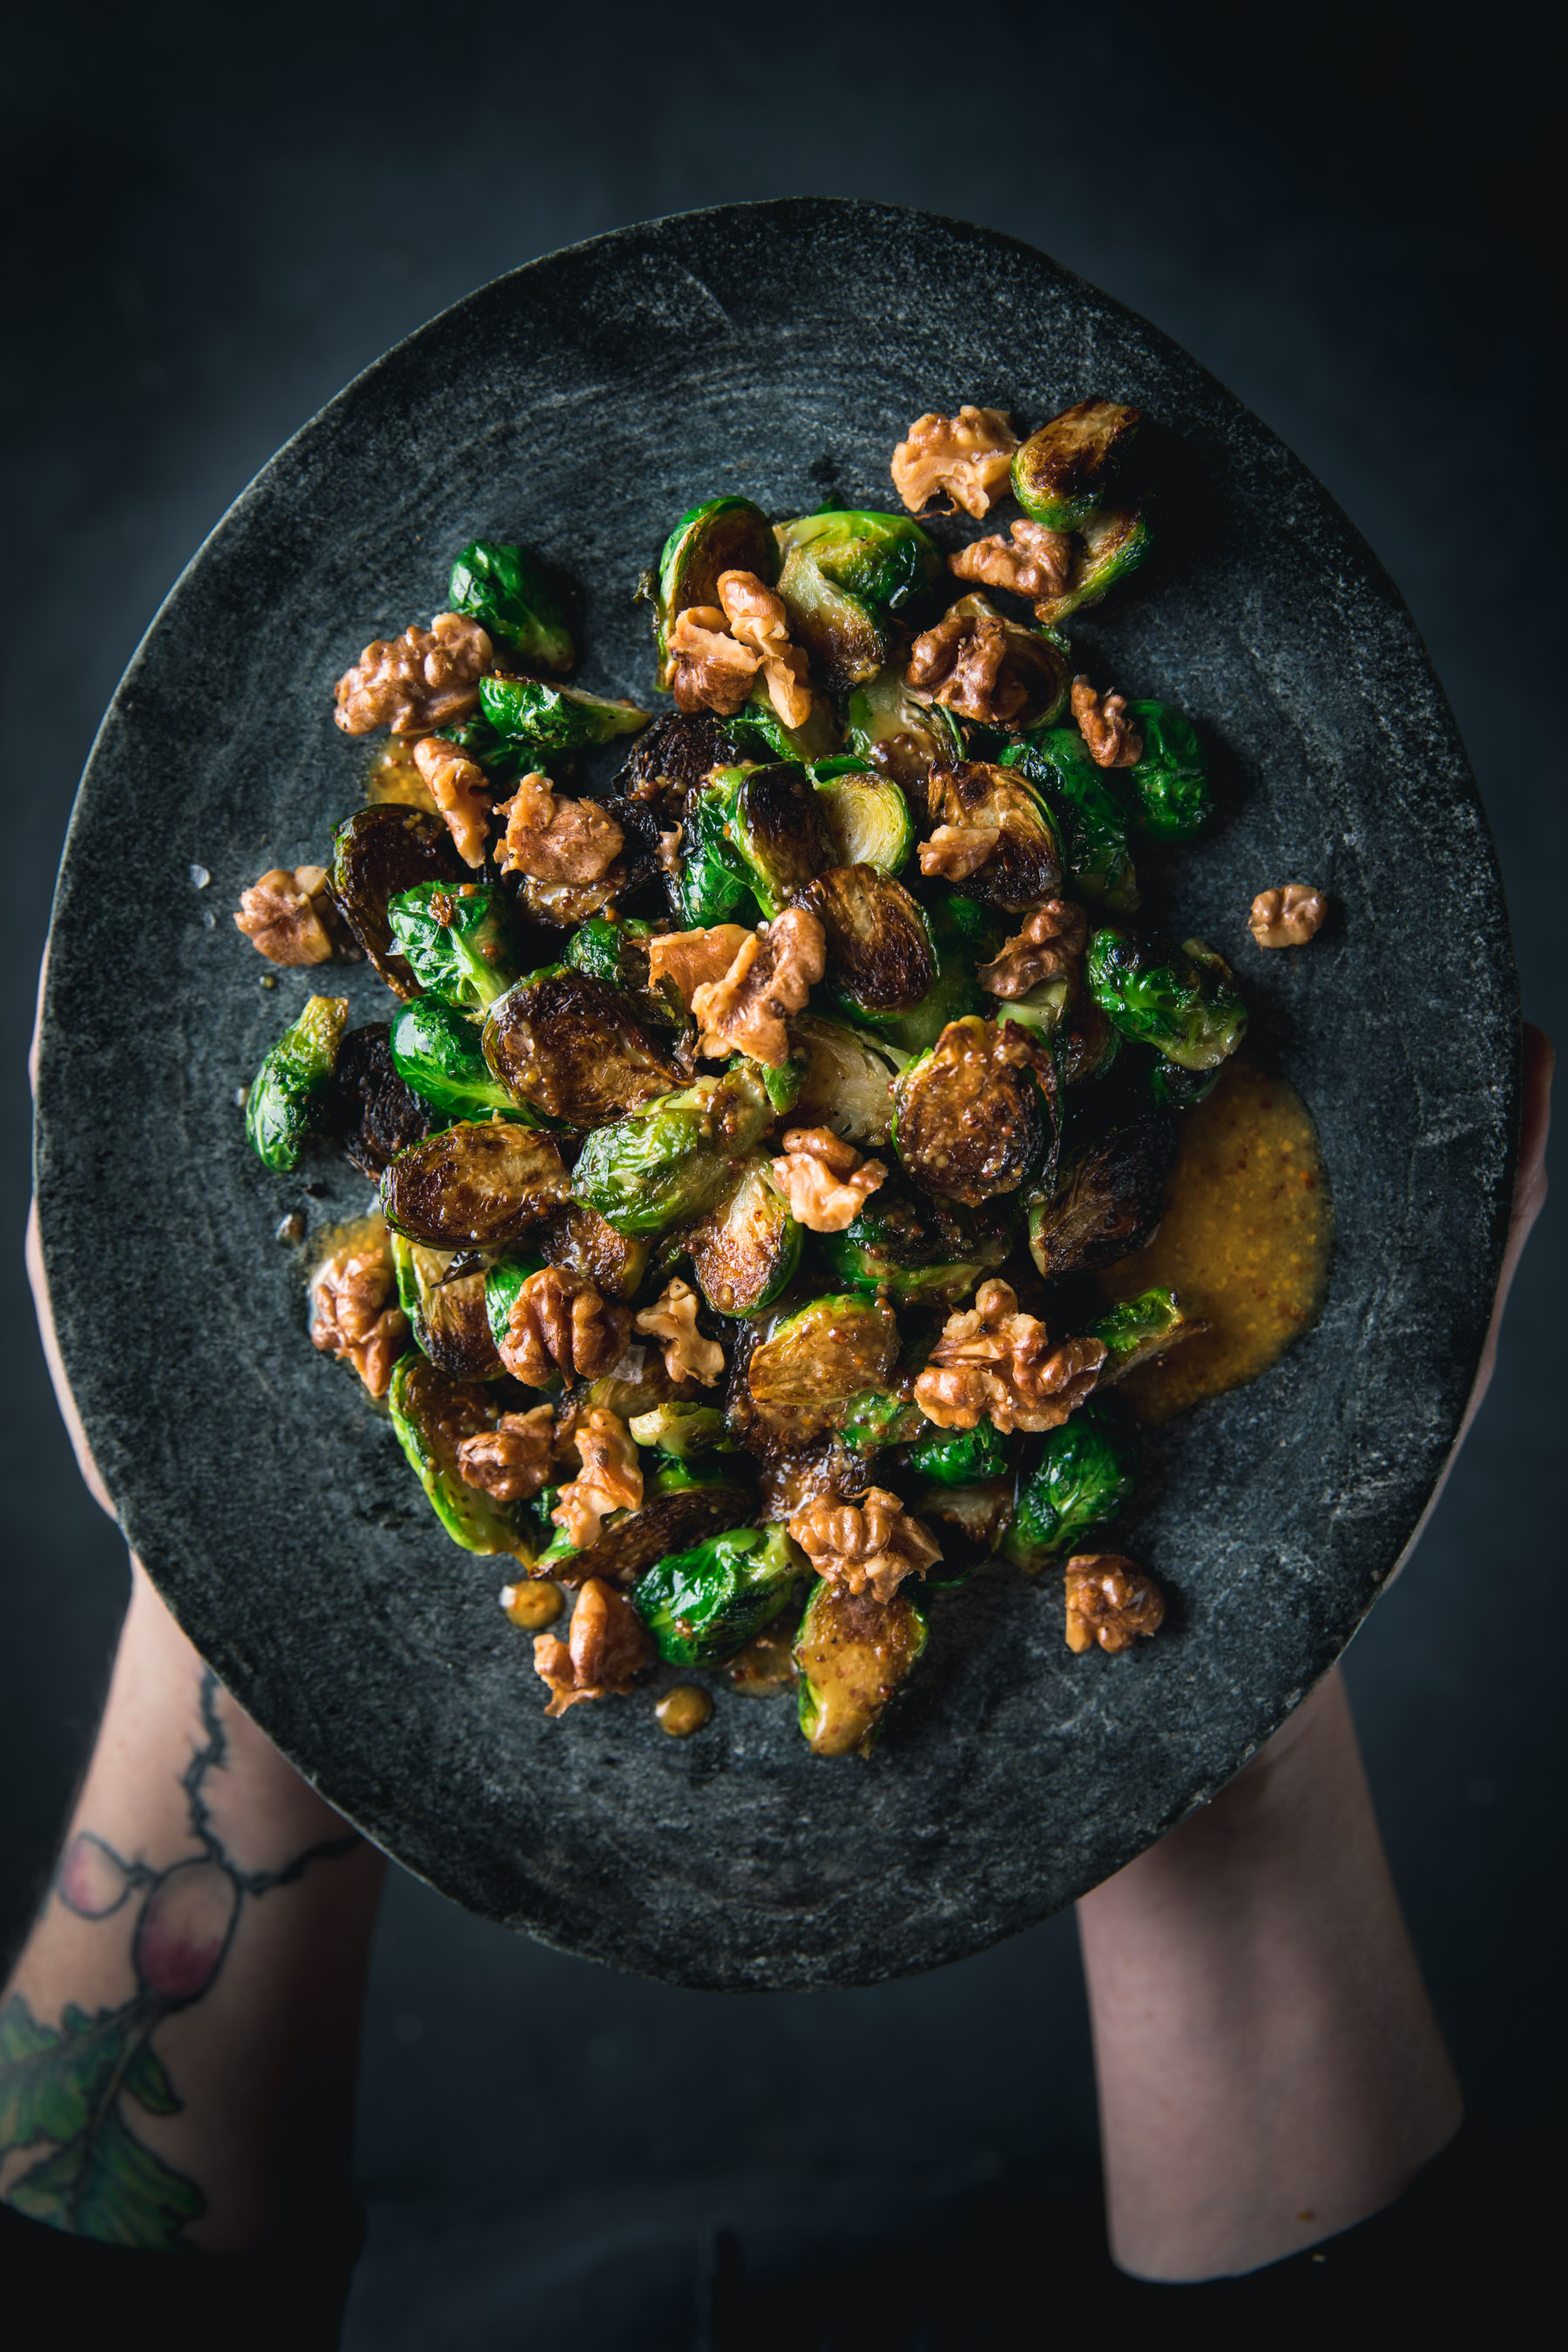 Crispy Brussels Sprouts with Mustard Vinaigrette and Toasted Walnuts